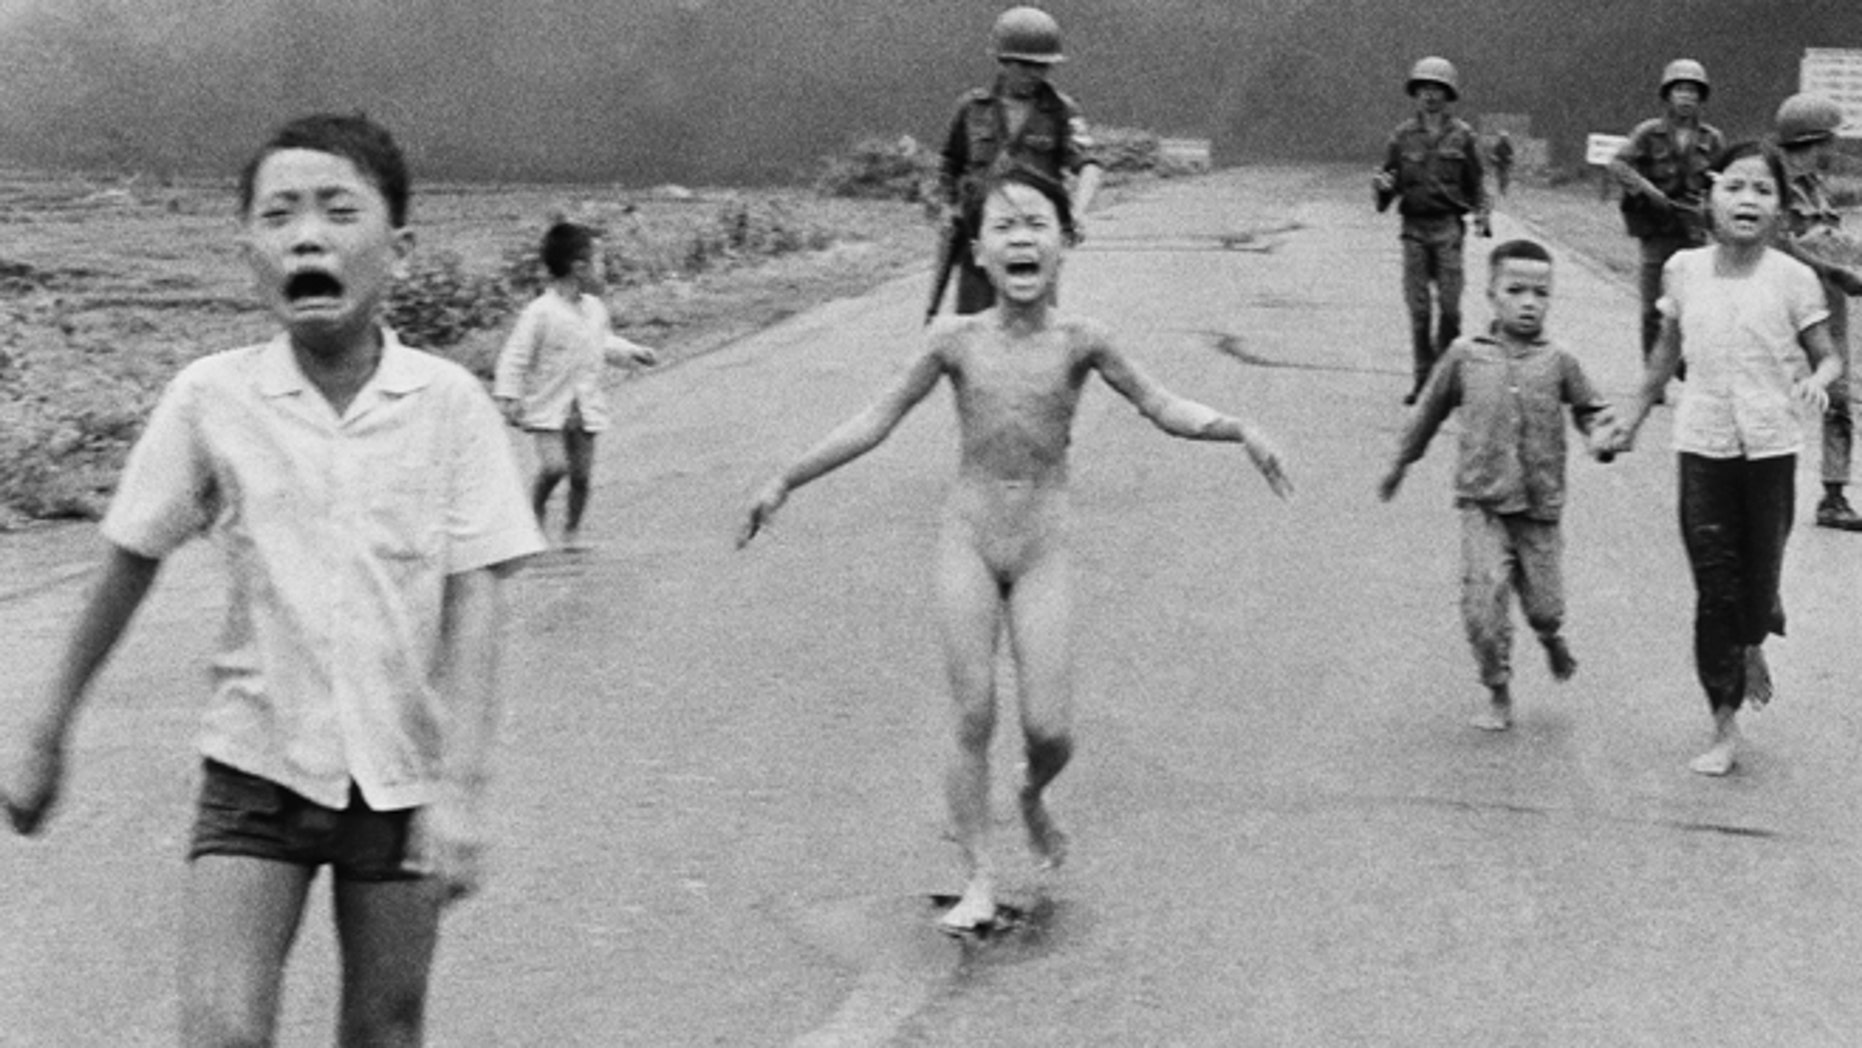 In this June 8, 1972, file photo, 9-year-old Kim Phuc, center, runs with her brothers and cousins, followed by South Vietnamese forces, down Route 1 near Trang Bang after a South Vietnamese plane accidentally dropped its flaming napalm on its own troops and civilians. The terrified girl had ripped off her burning clothes while fleeing.